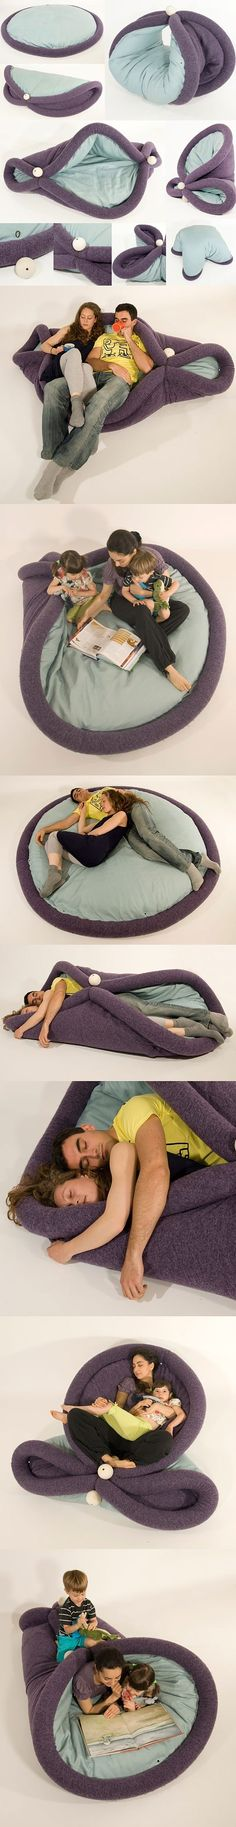 This is so nifty!! I want one!